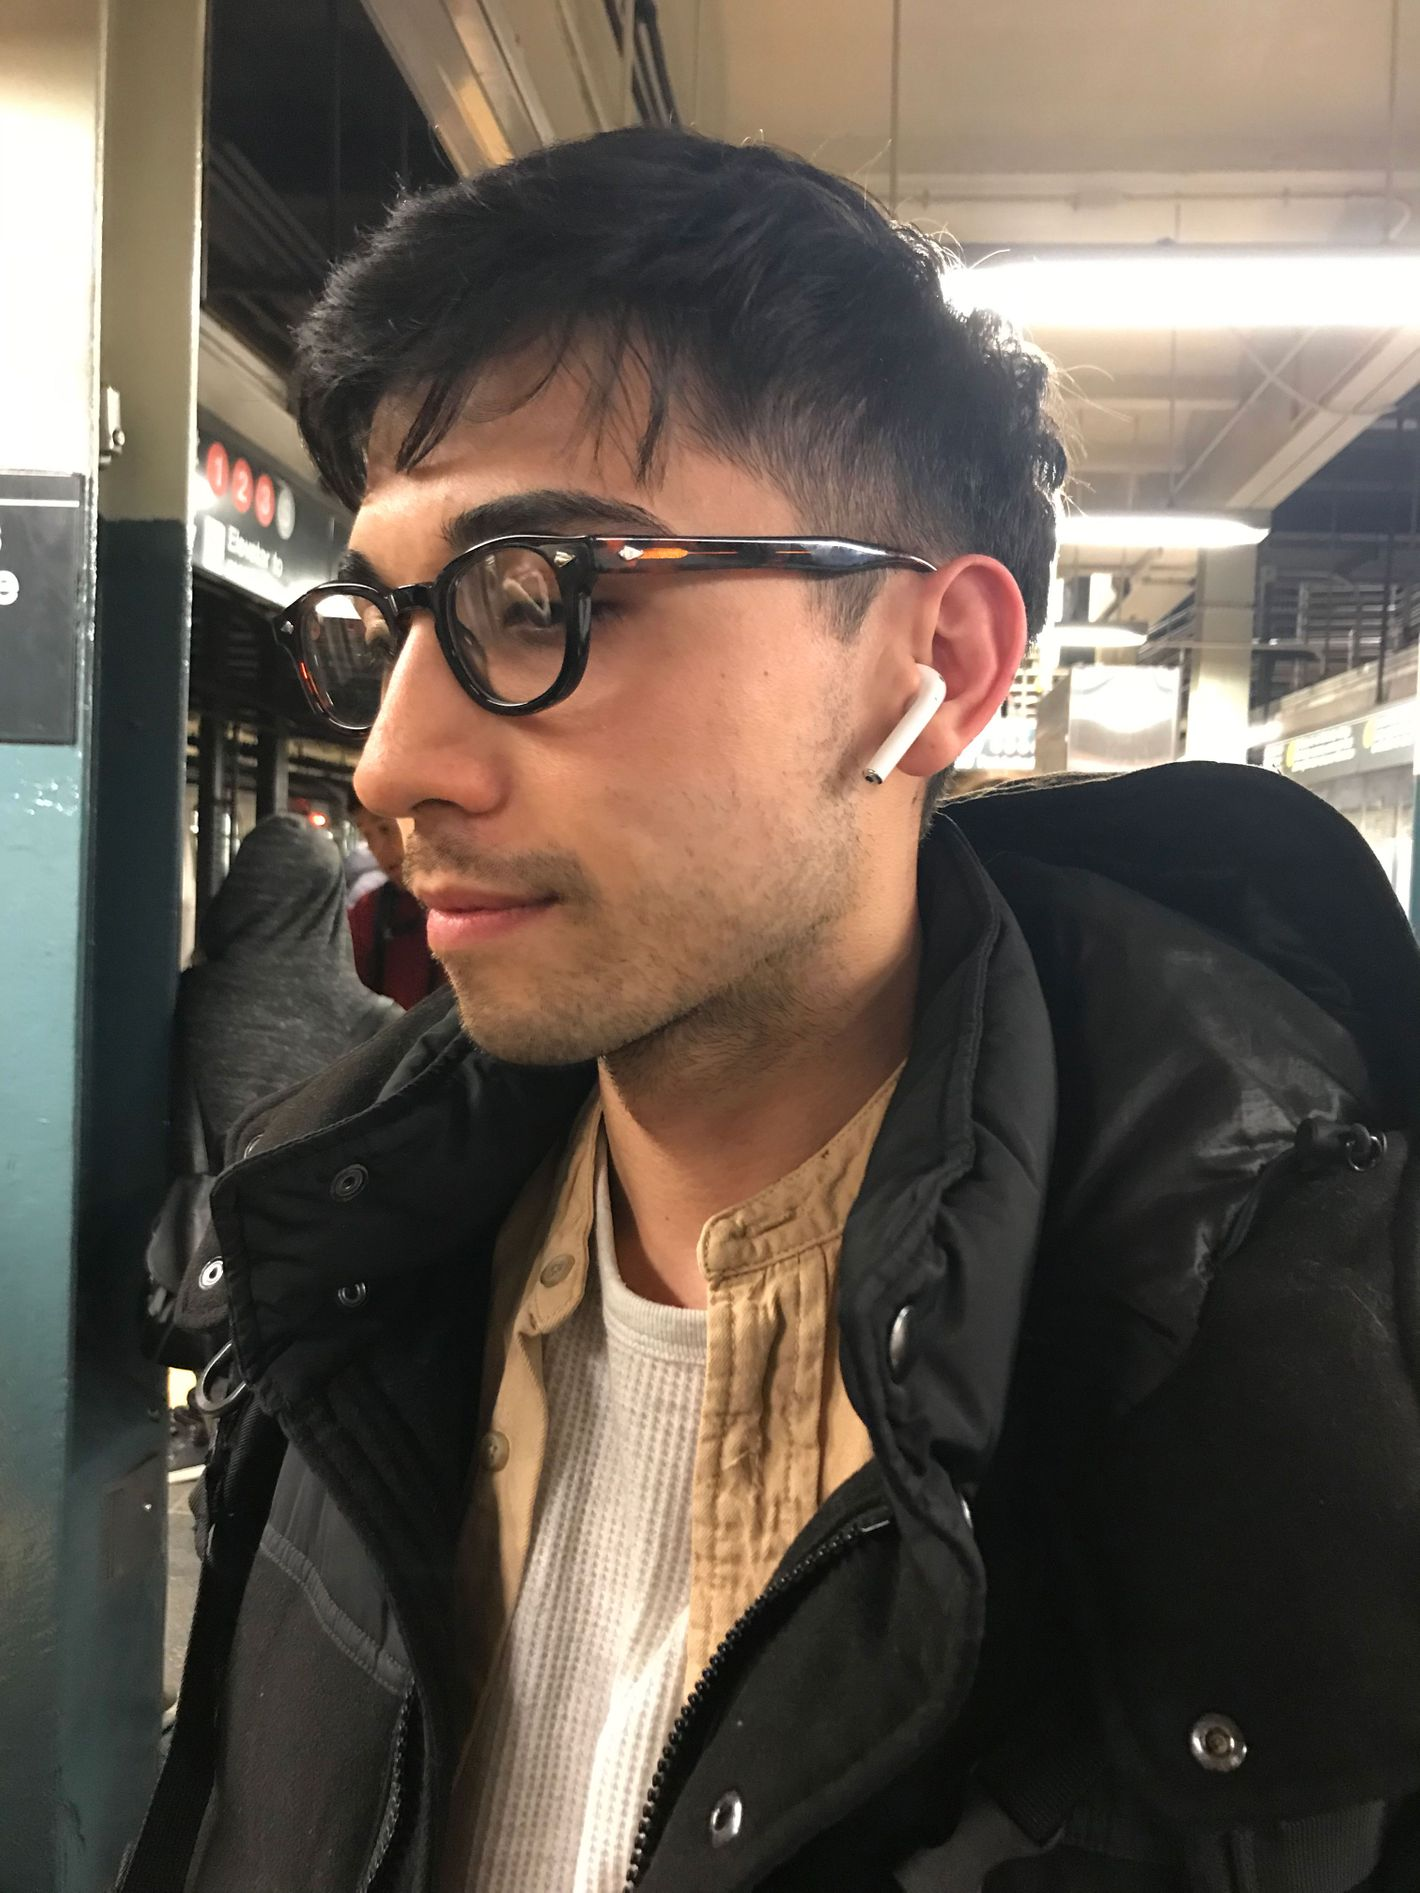 airpods pro people wearing them